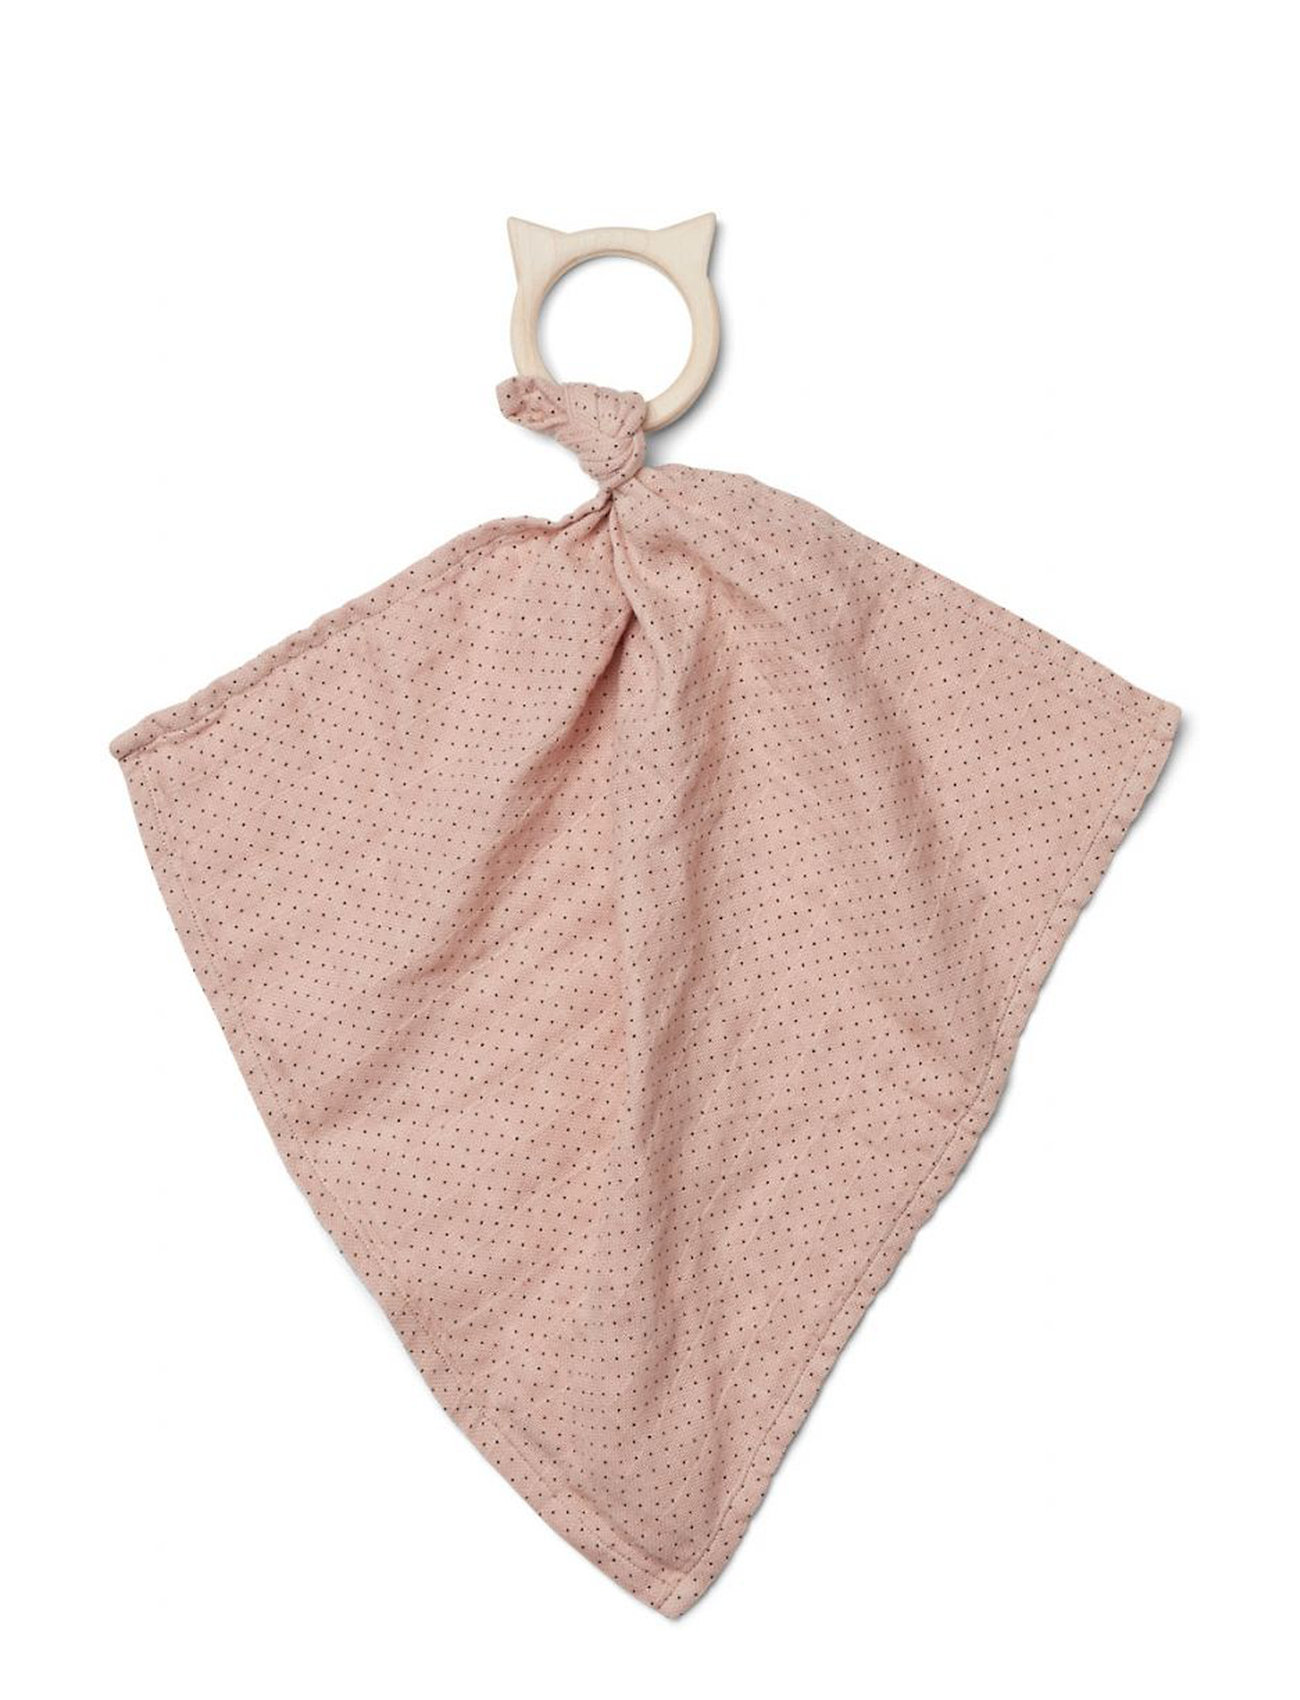 Liewood Dines teether cuddle cloth - LITTLE DOT ROSE